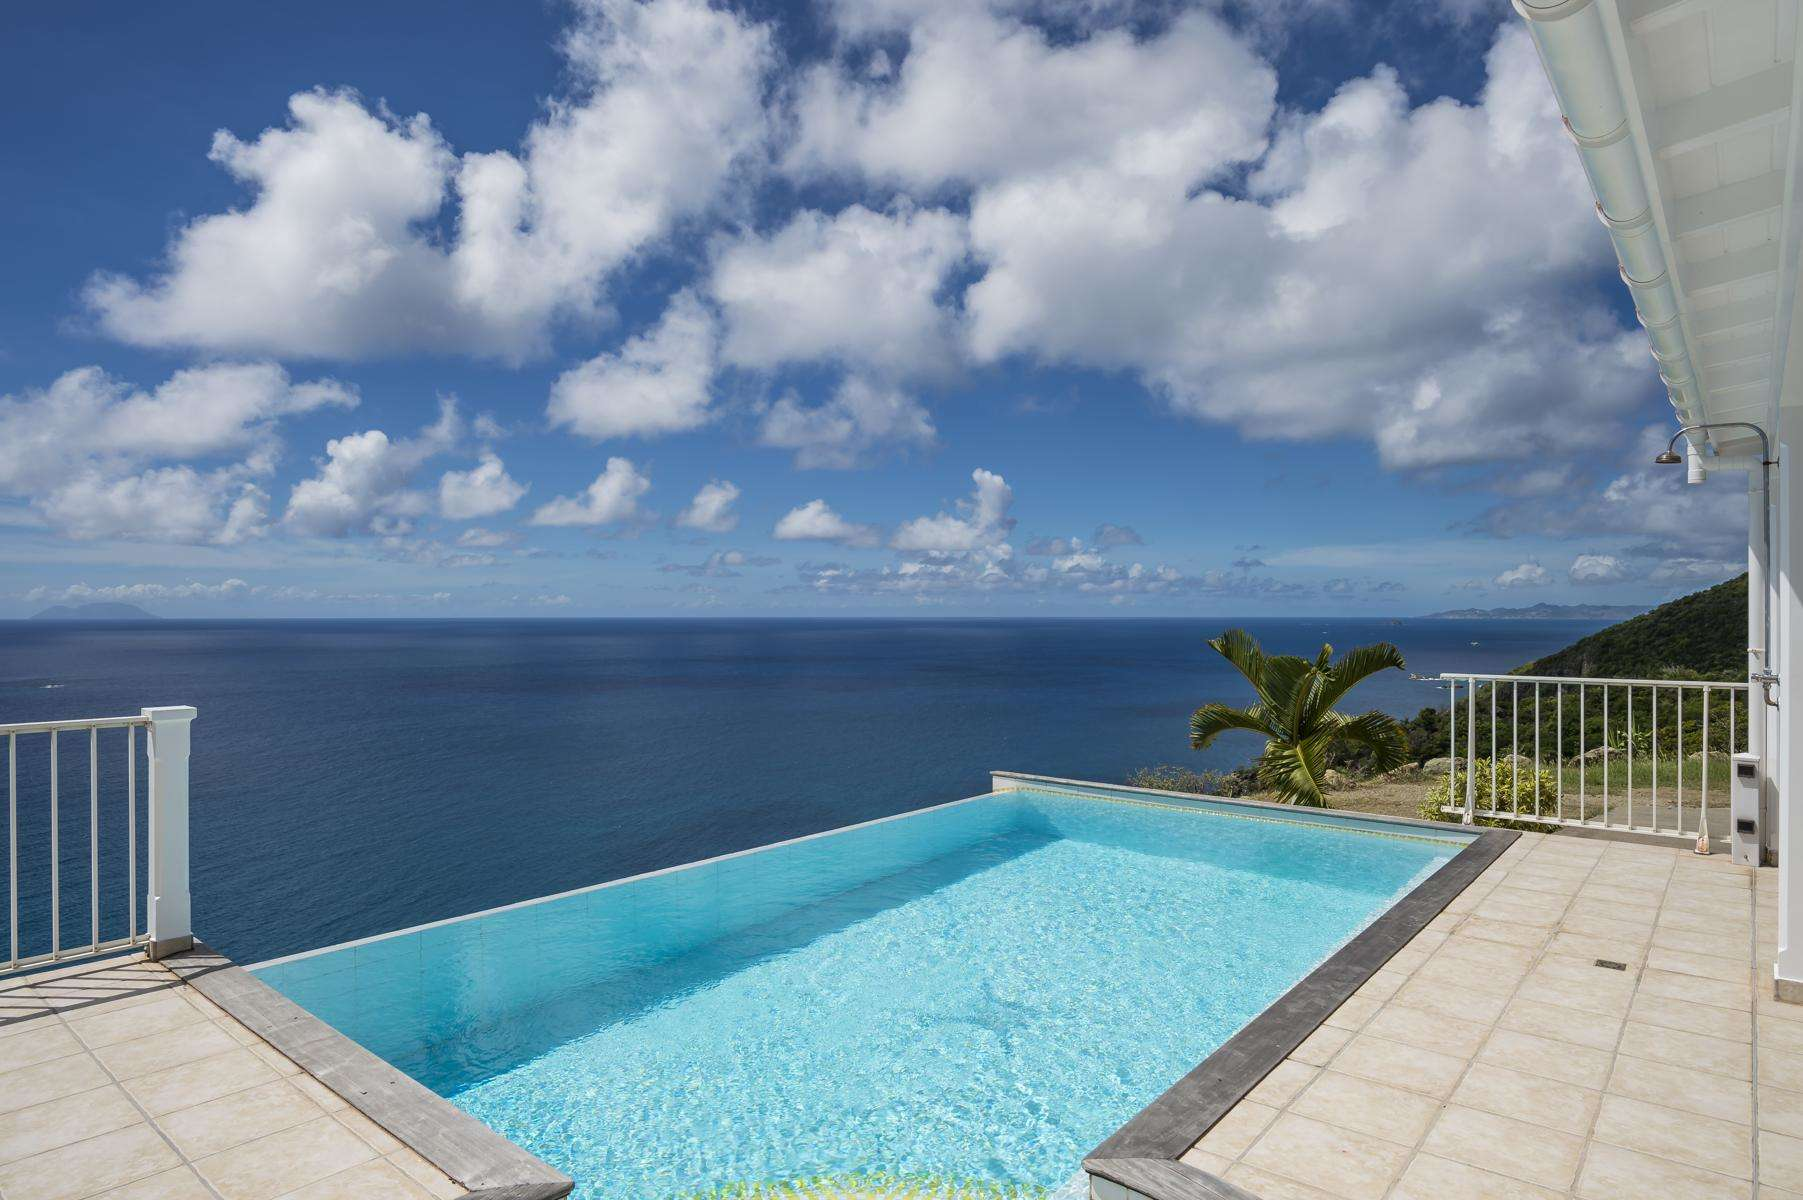 Luxury villa rentals caribbean - St barthelemy - Colombier - No location 4 - Manon - Image 1/25